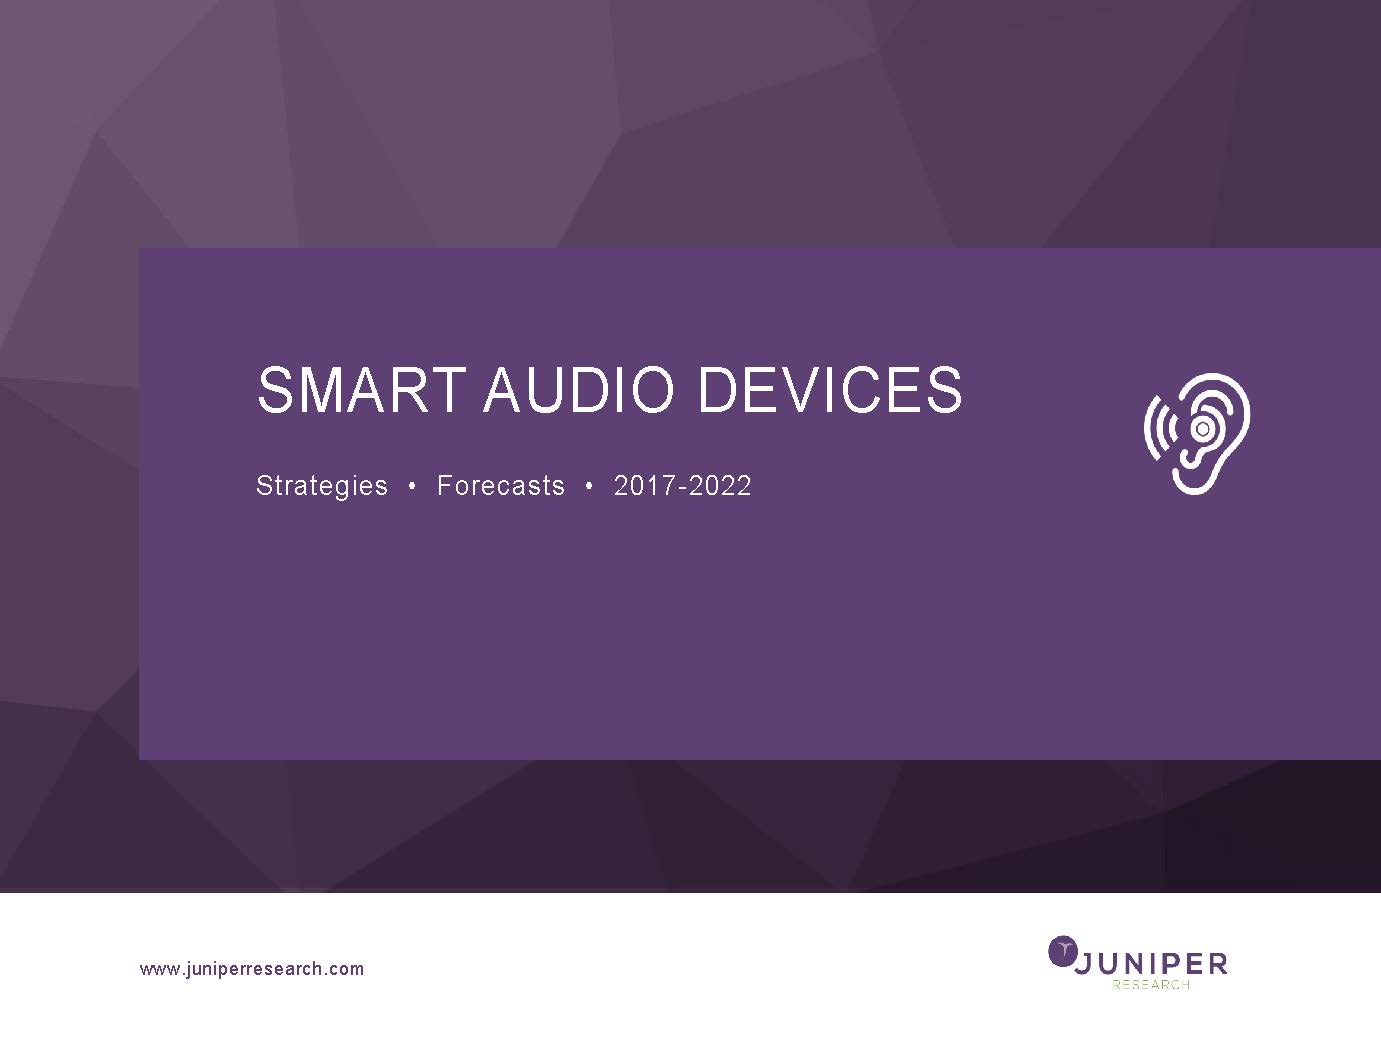 Smart Audio Devices